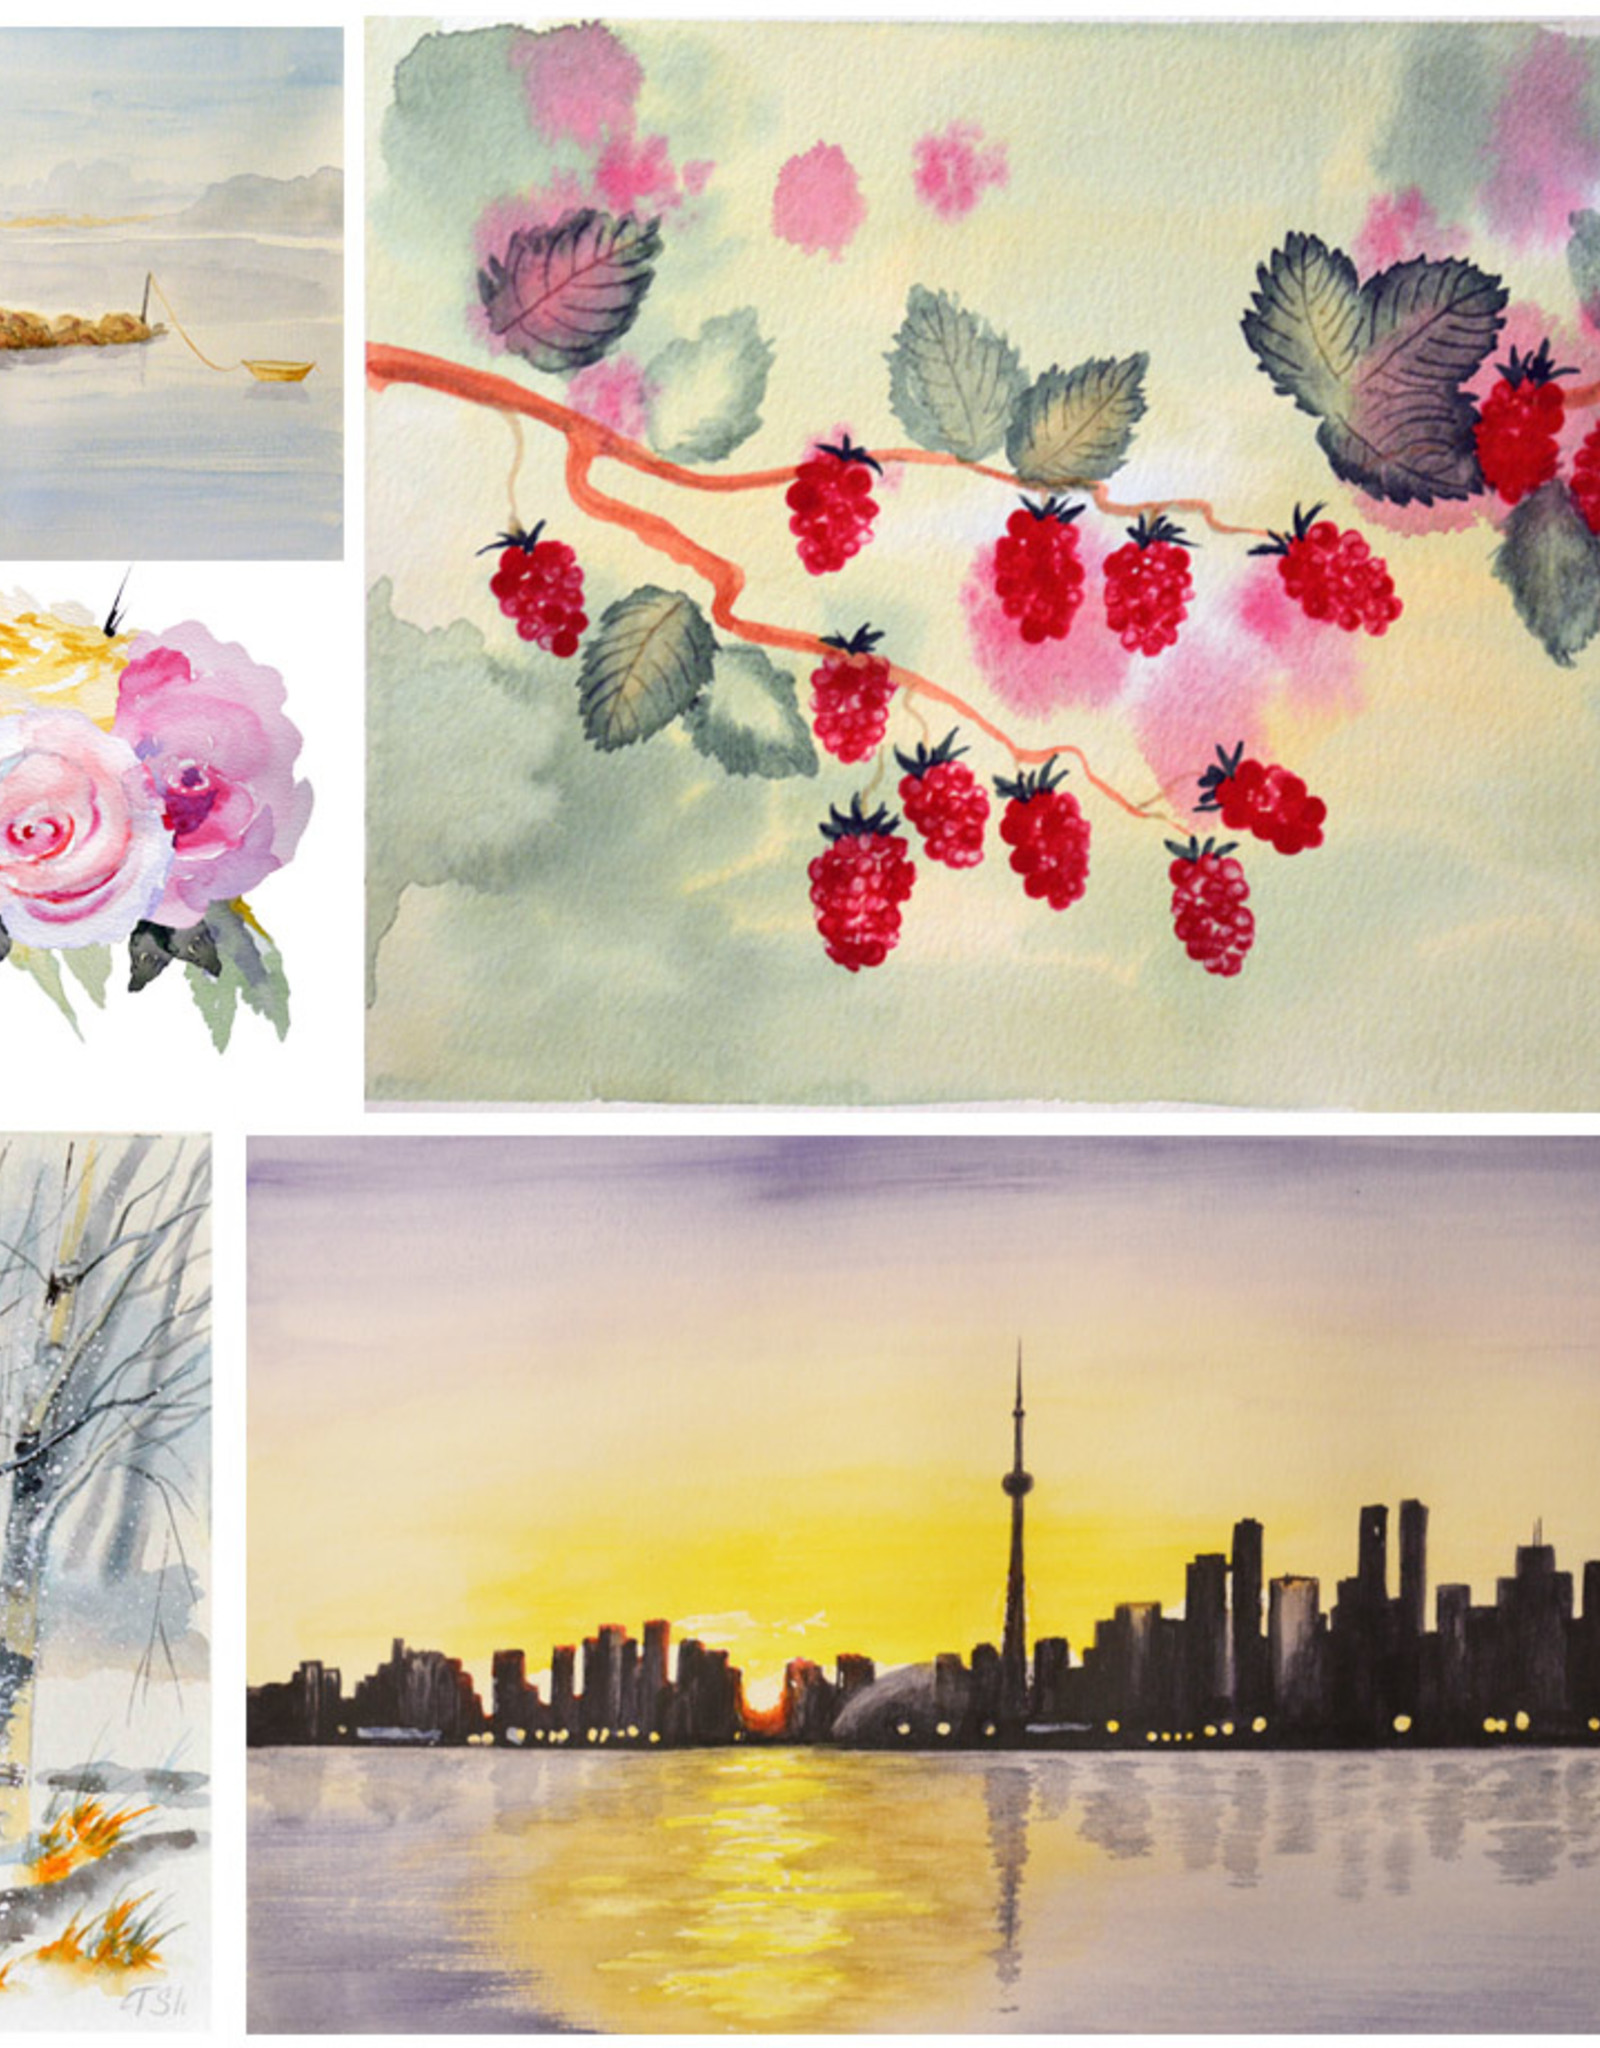 Tamara S Watercolour  Art Class Level two  Tues Oct 5 to Tues Oct 26 4:00 to 6:00 pm